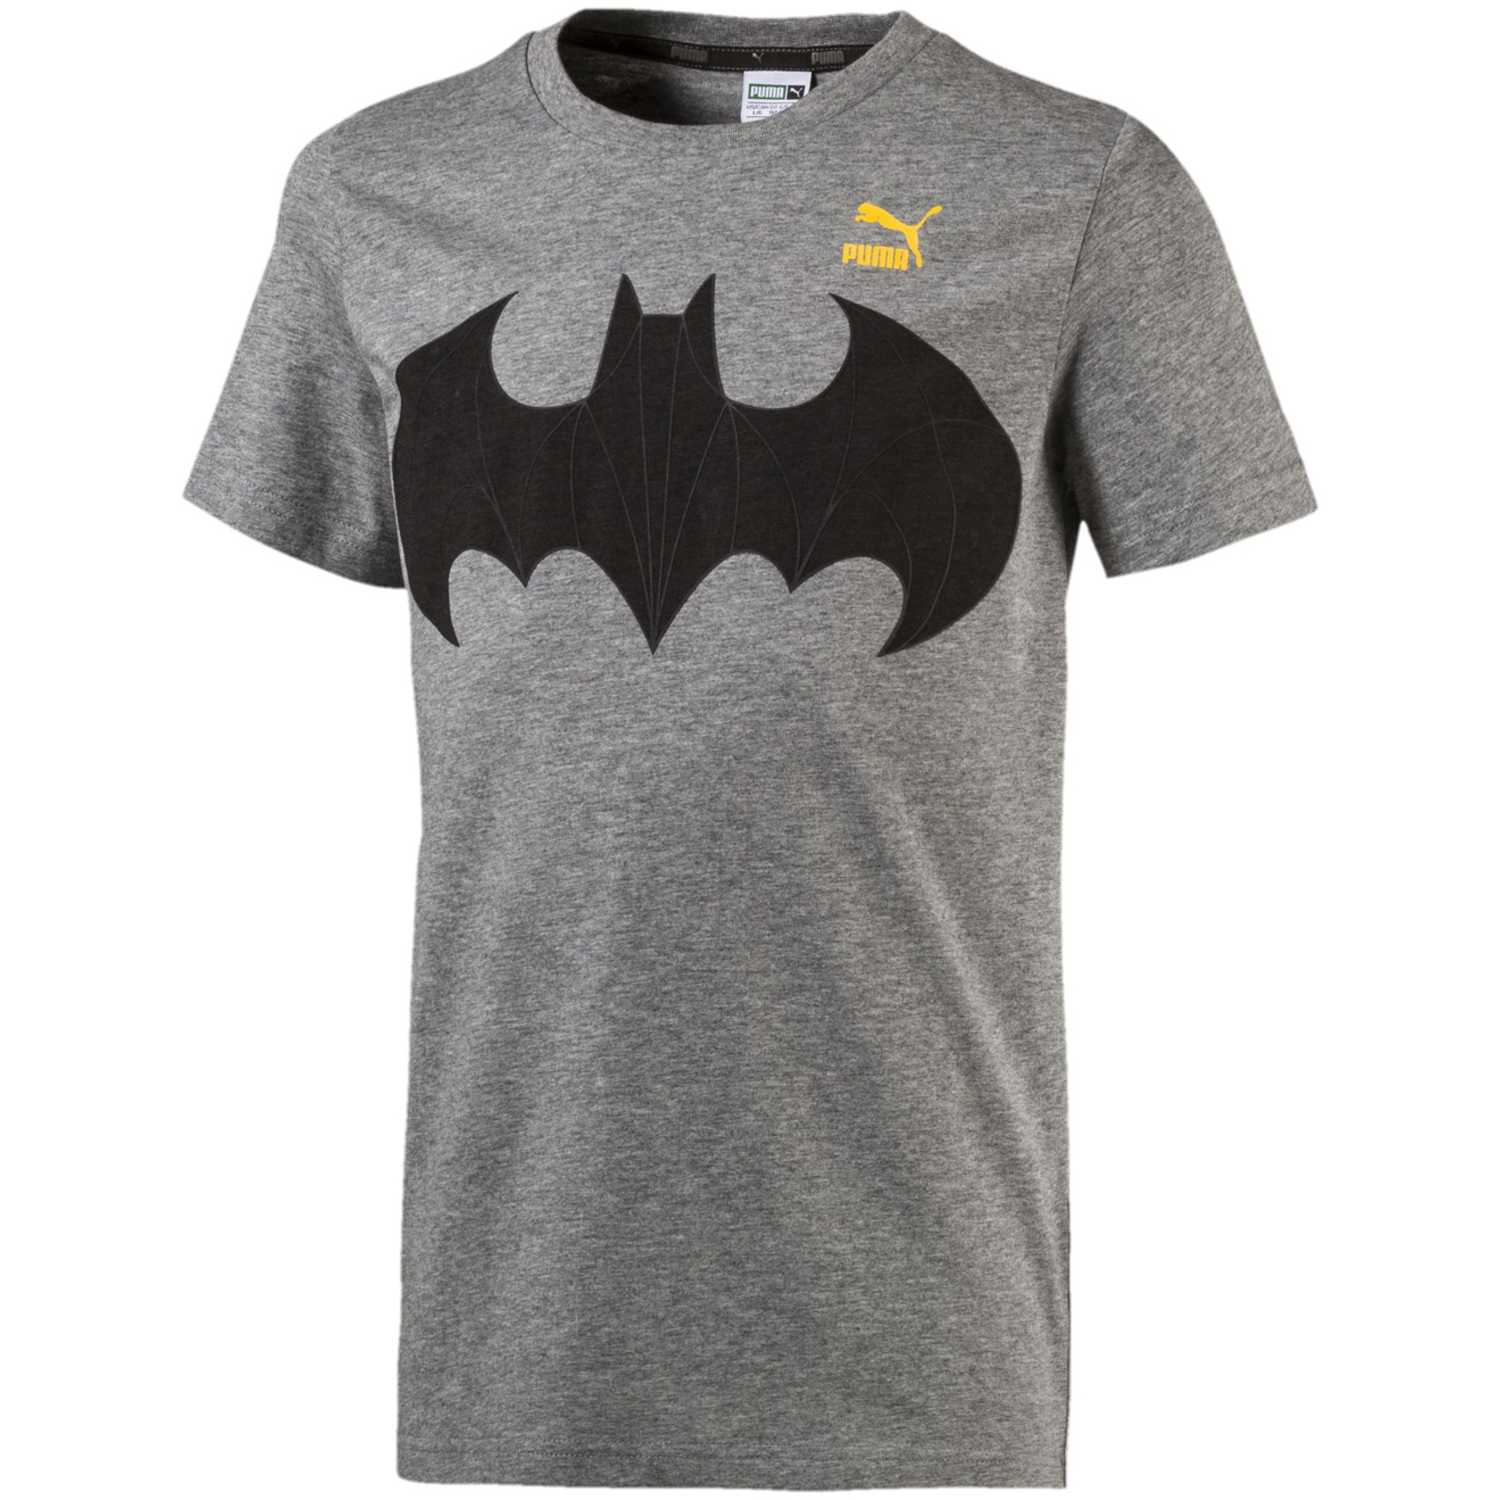 Polo de Niño Puma Gris   Negro justice league tee (batman ... cd05f5b279a60